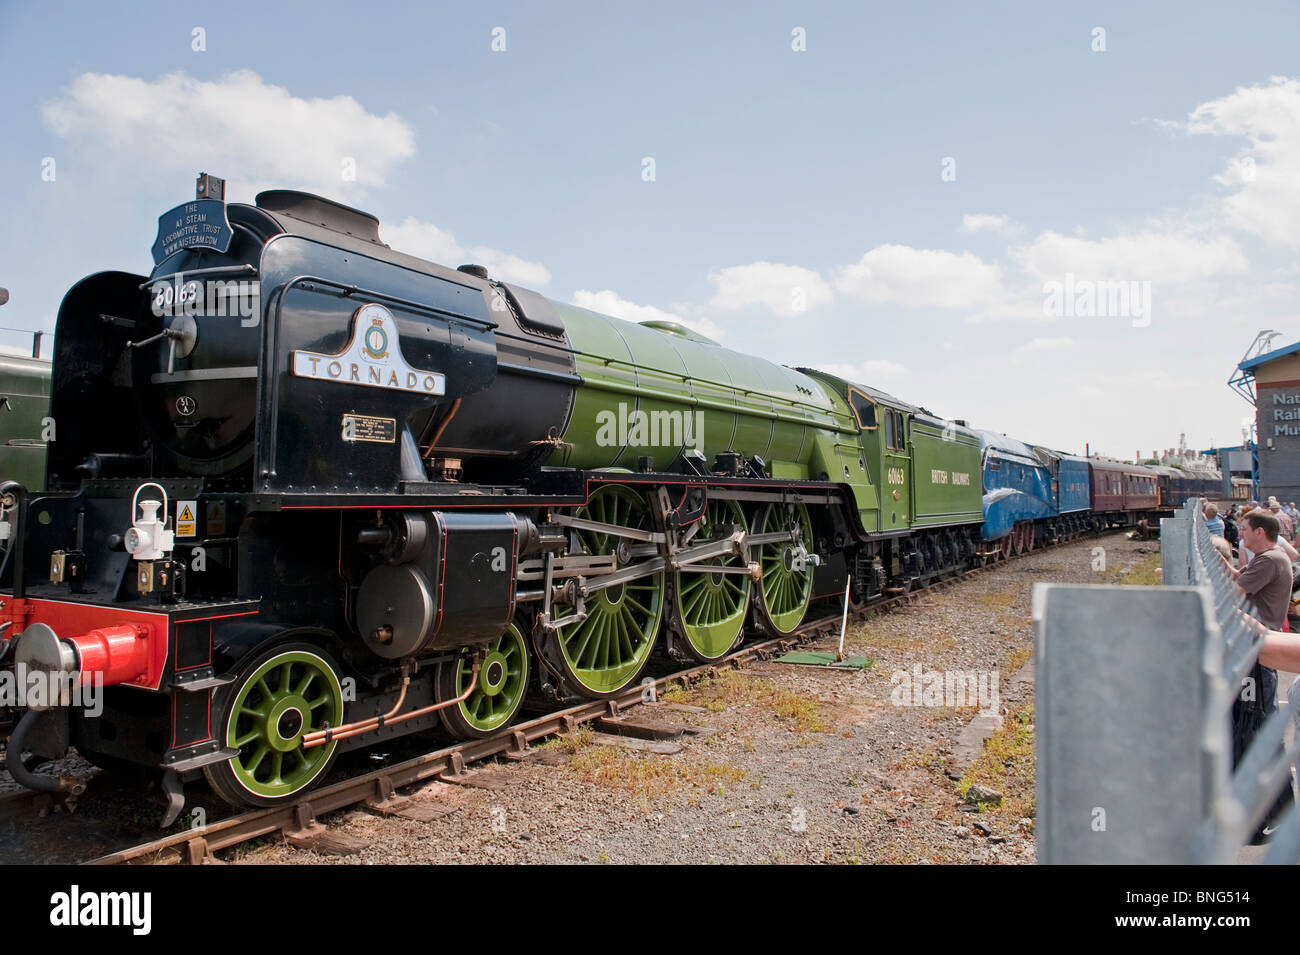 the newly built tornado steam train waits at the national railway museum york to pull